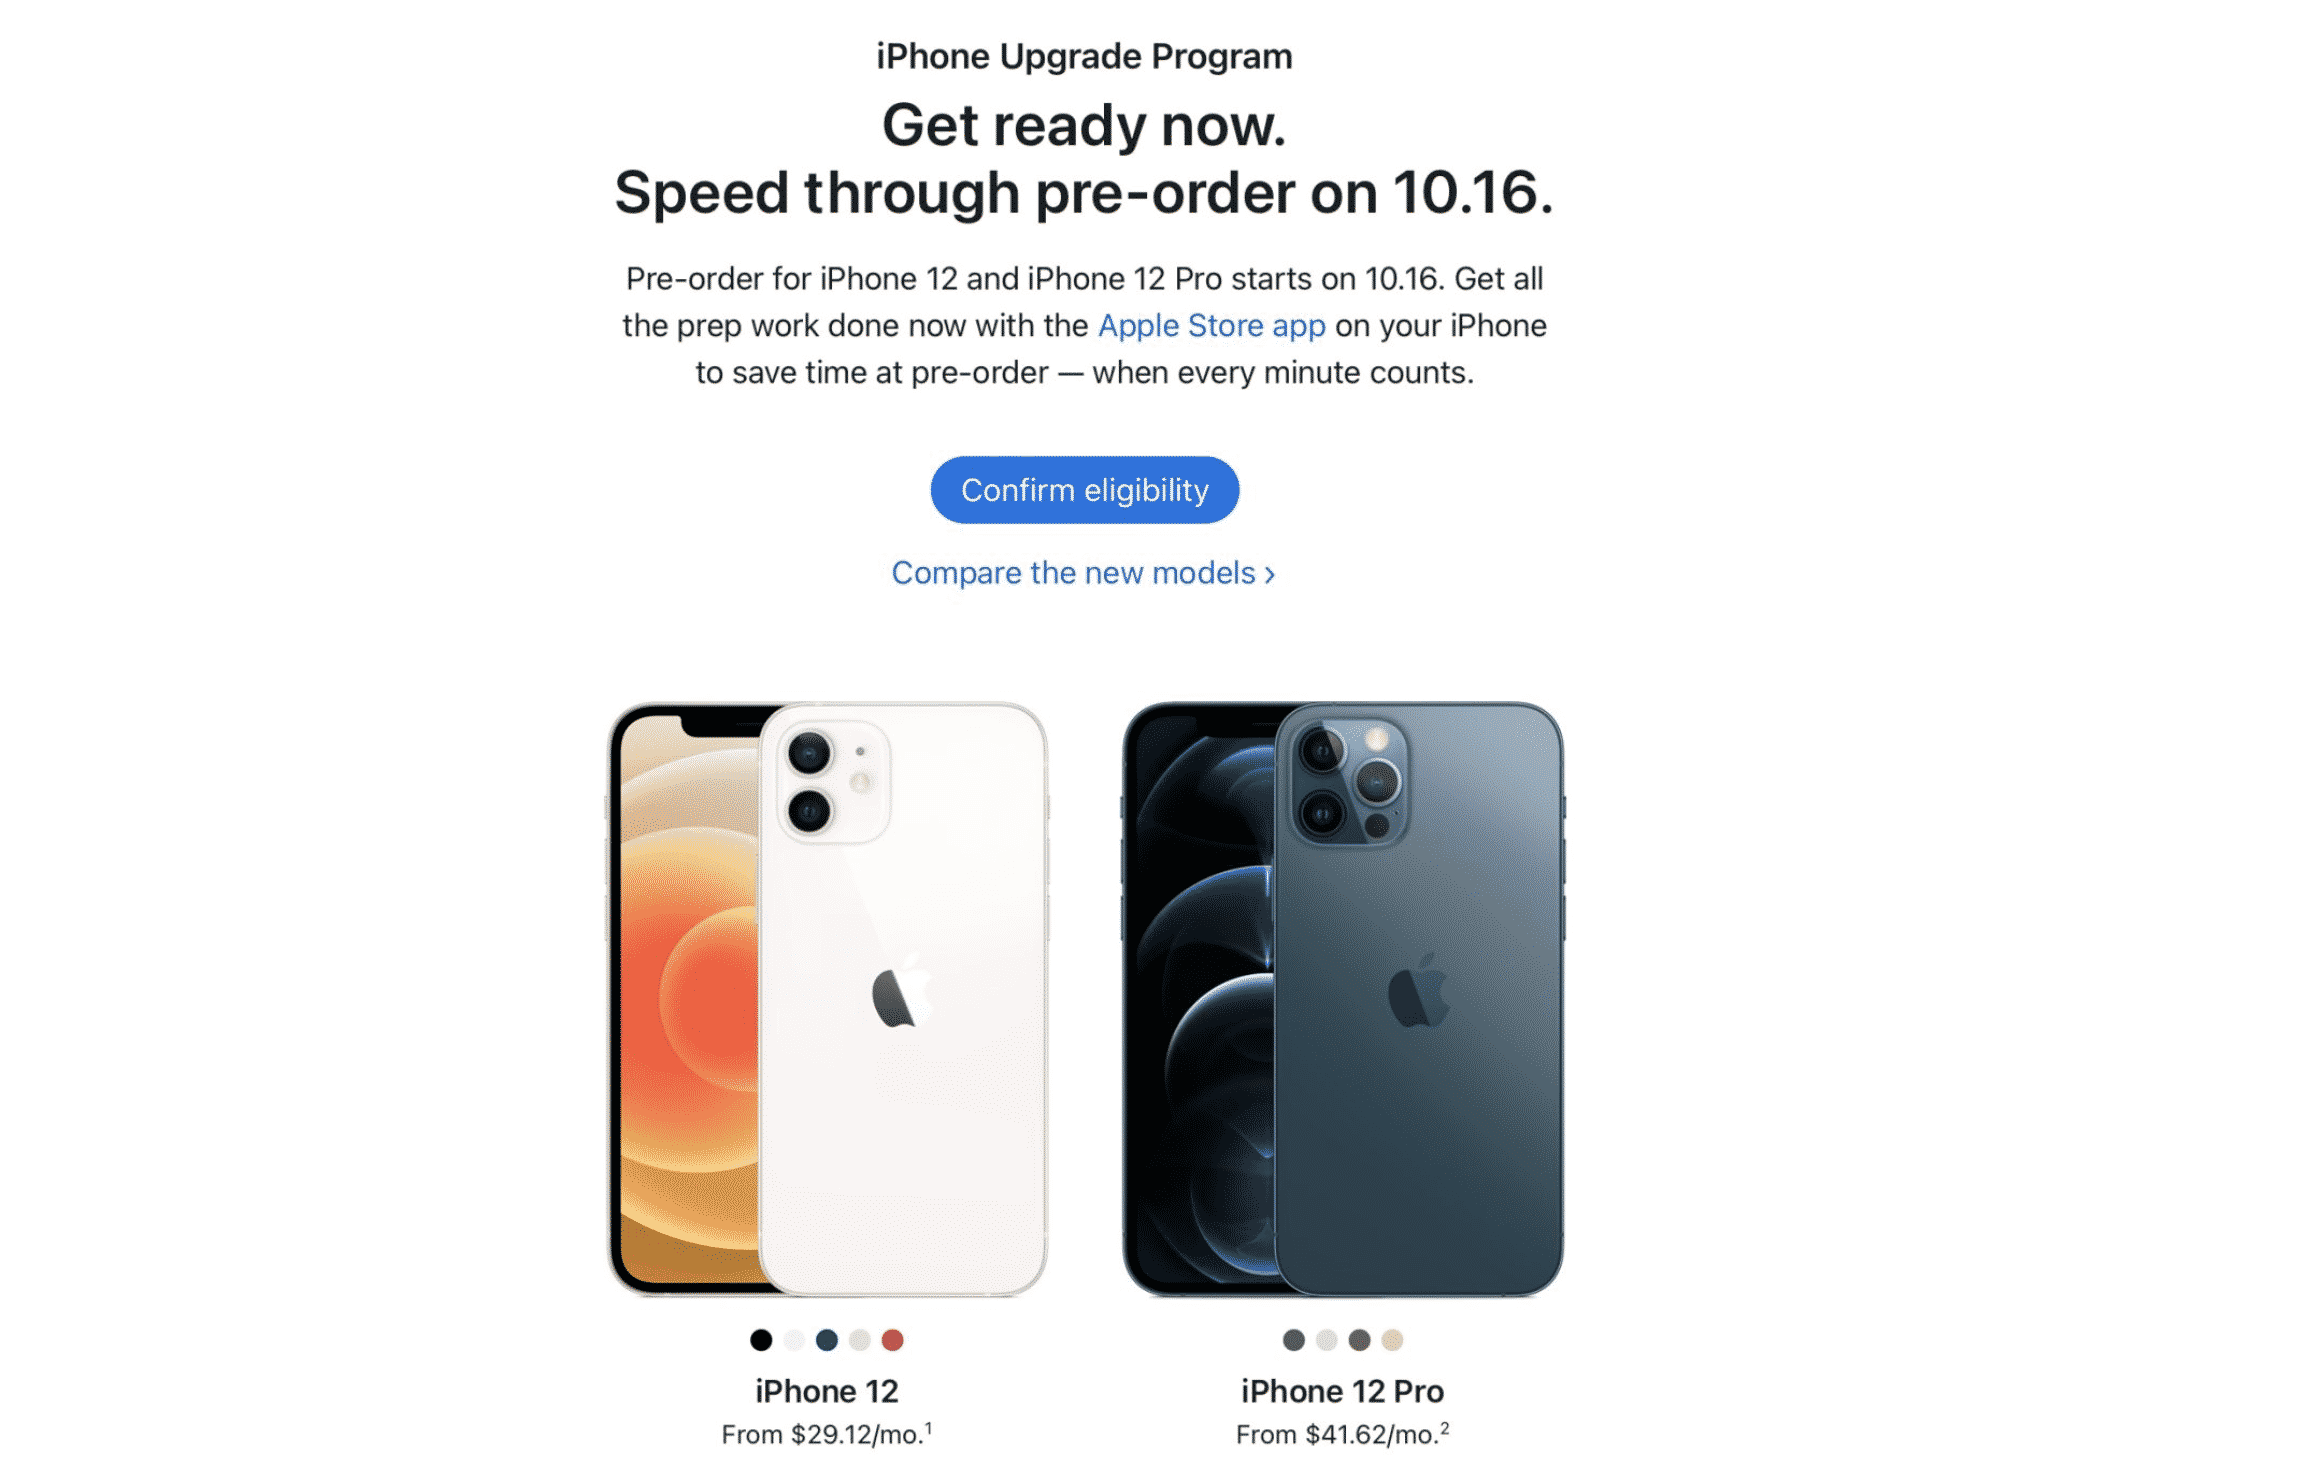 Pre-approvals for iPhone 13 via iPhone upgrade program now open